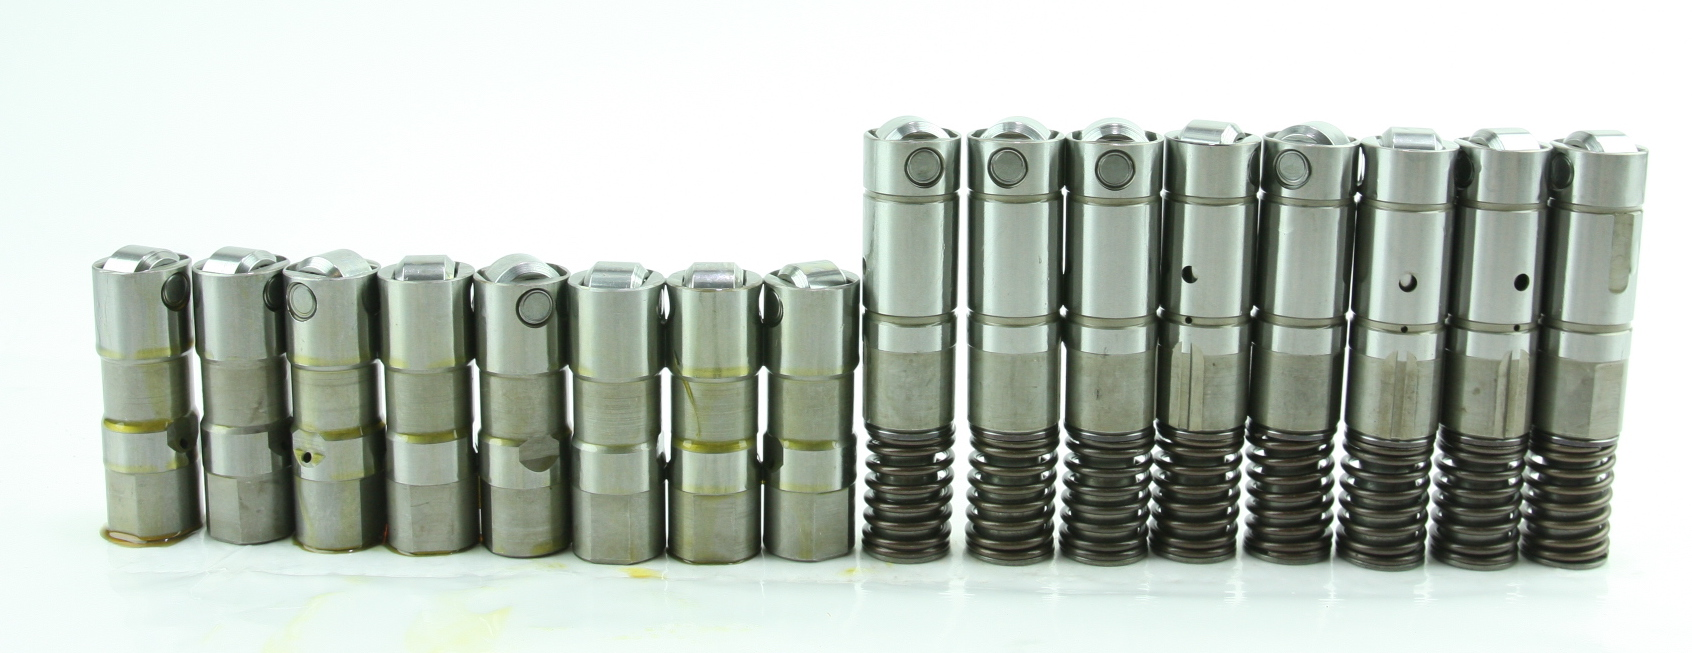 16 Genuine OEM GM Valve Lifters LS w/ AFM Active Fuel DOD Displacement on Demand - image 1